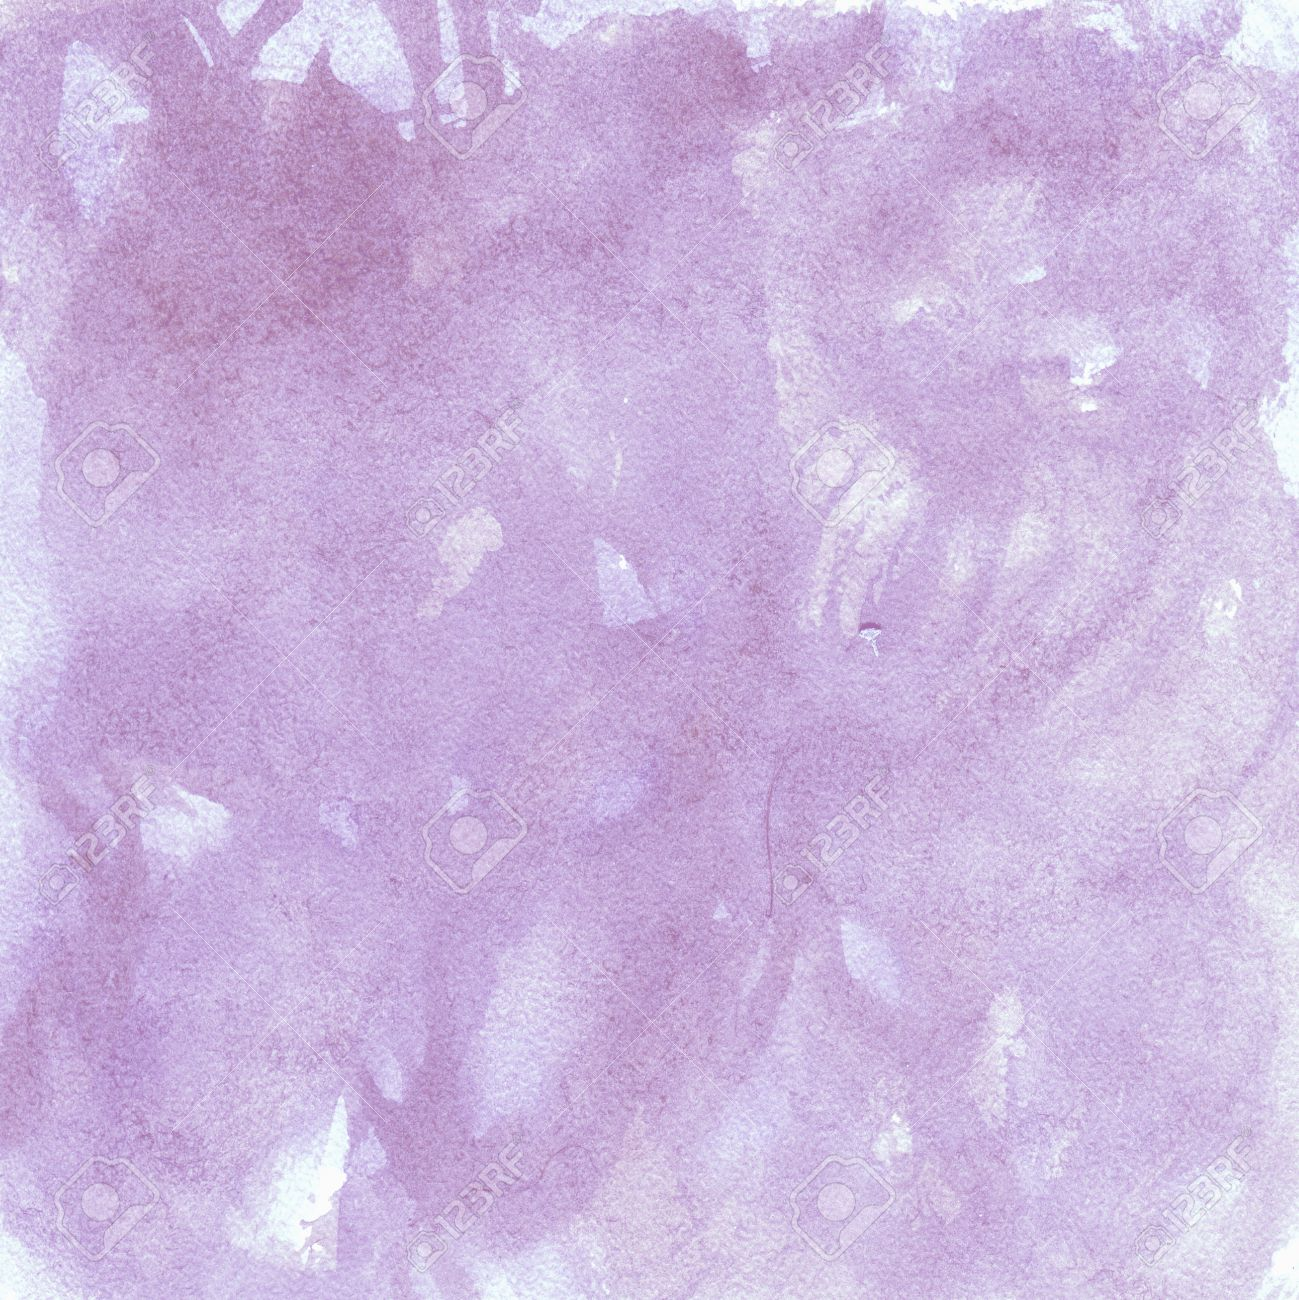 Depicting The Texture Background Light Purple Color. Dry Brush, Watercolor,  Effect Pureed. Images